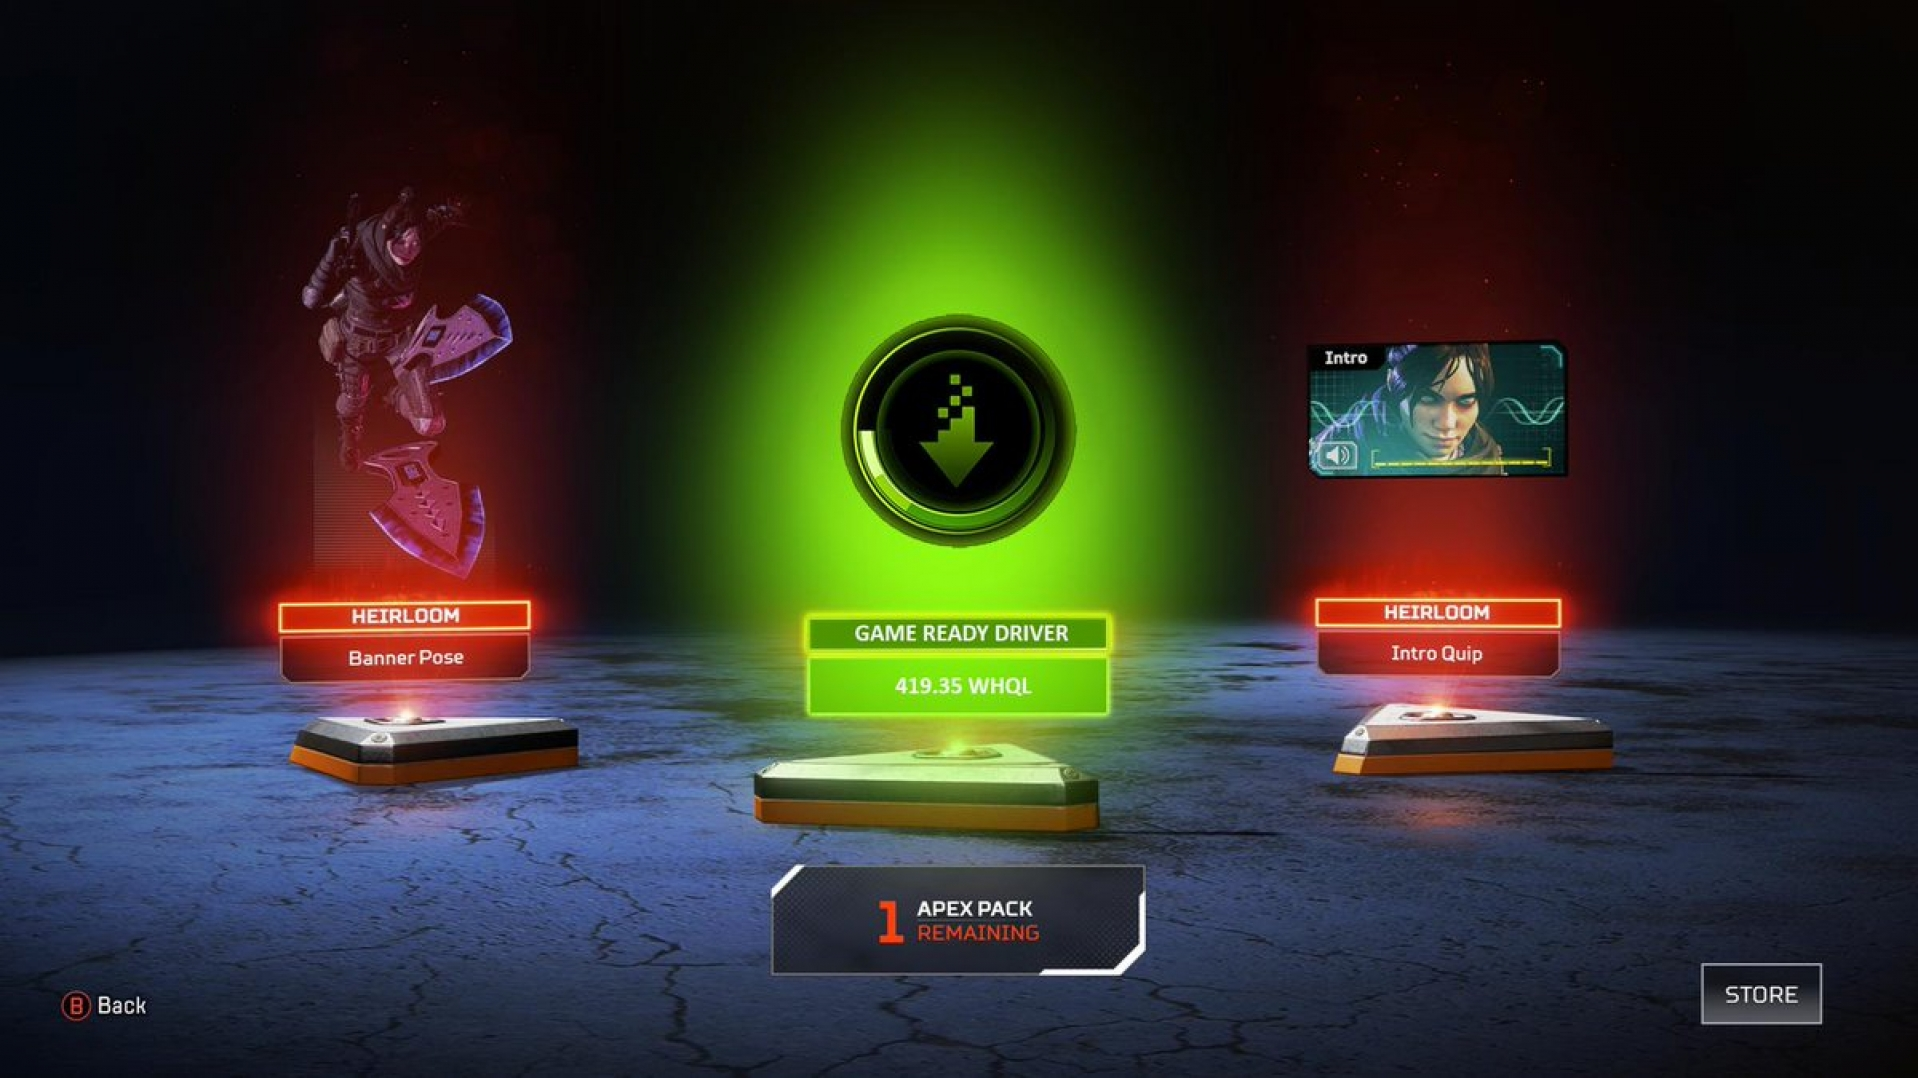 Nvidia Launches Game Ready Driver for Apex Legends, Devil May Cry 5